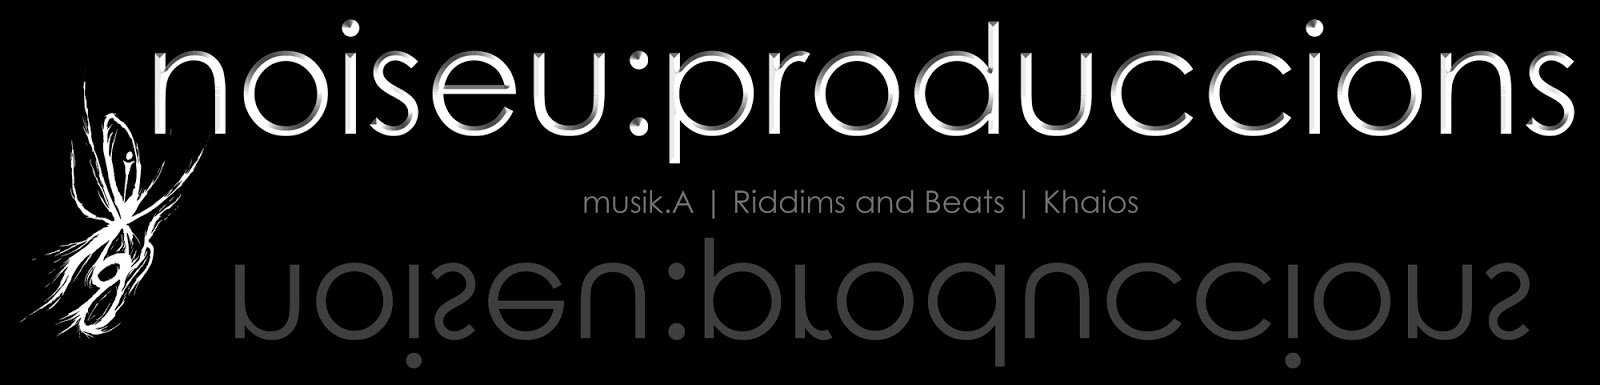 Noiseu Produccions Musik.A | Riddims and Beats | Khaios